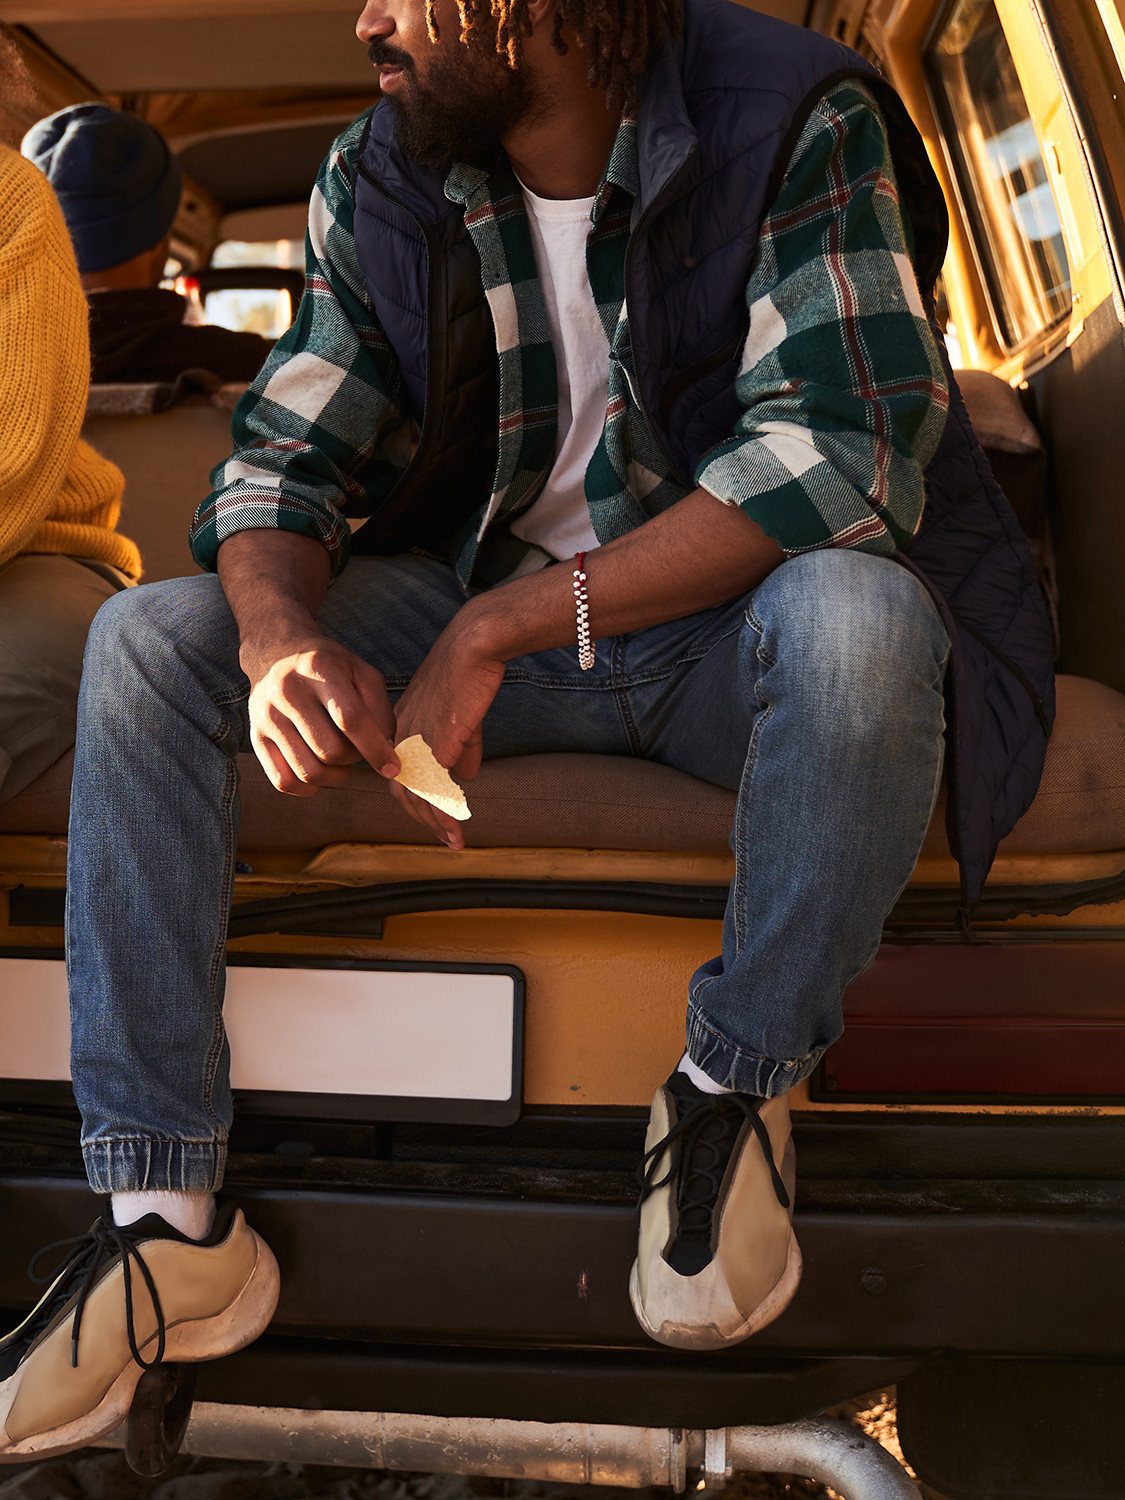 Men's outfit idea for 2021 with navy vest, green plaid shirt, white crew neck t-shirt, mid blue jeans. Suitable for spring and fall.